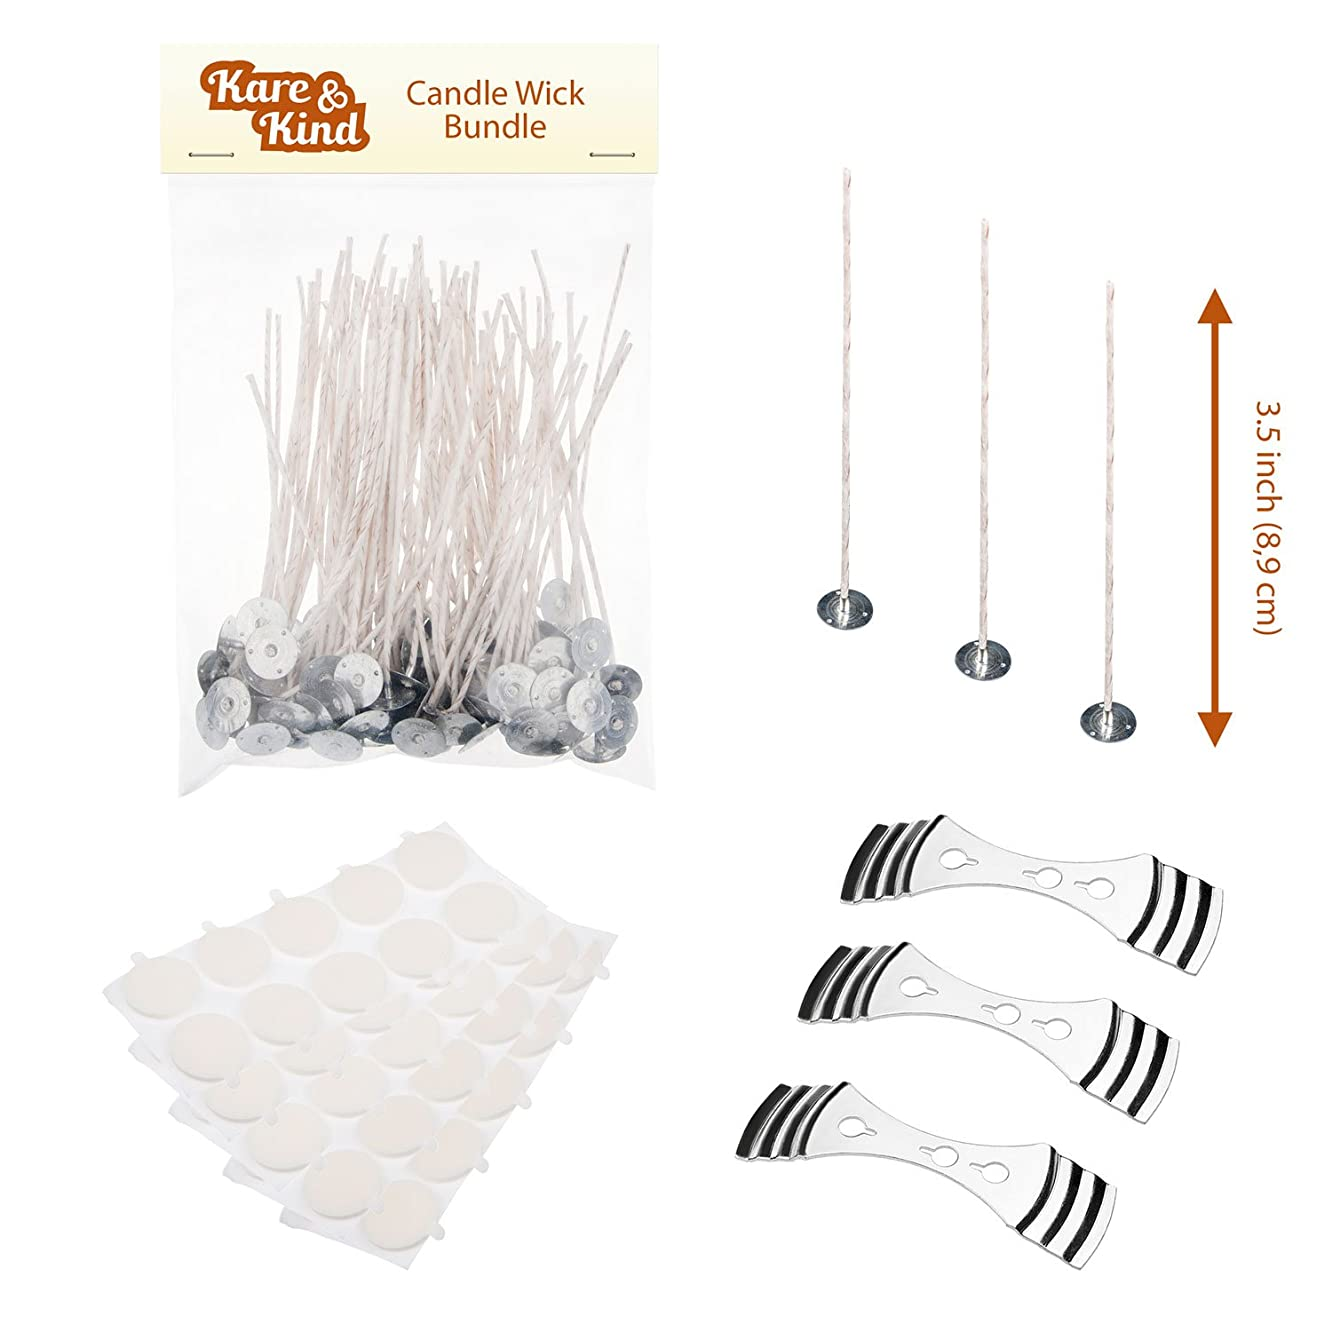 Candle Wick Bundle: 50 Candle Wicks, 50 Stickers and 3 Wick Holders - Easy Positioning - Wicks Coated With Natural Soy Wax, Cotton Threads Woven with Paper - Contains No Lead, Zinc or Other Metals